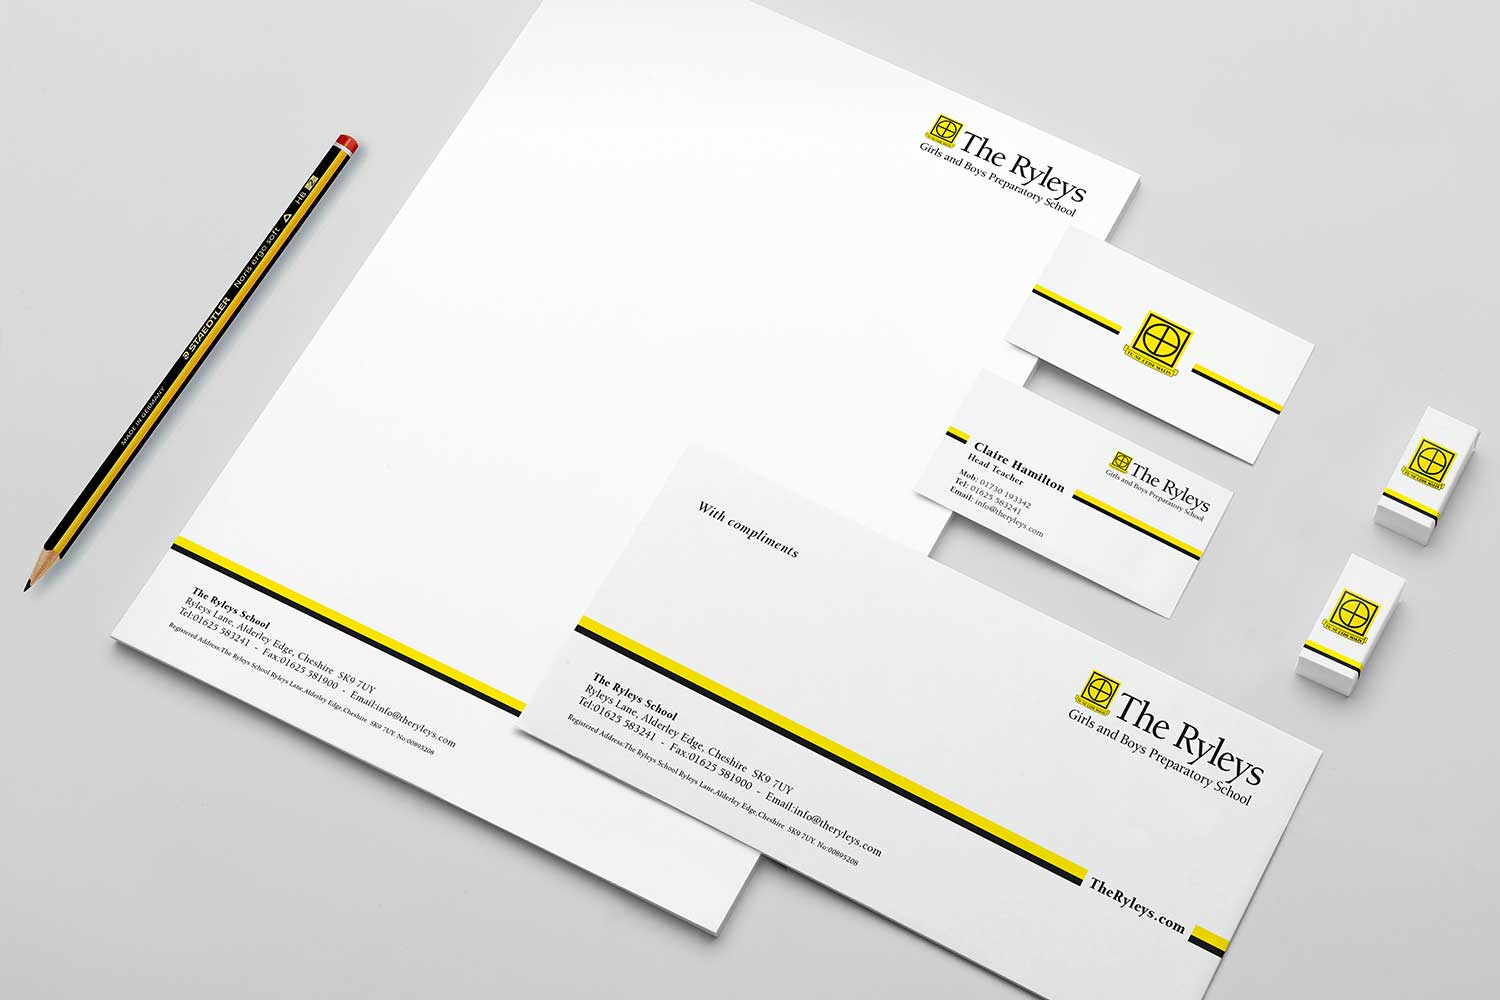 Stationery material.